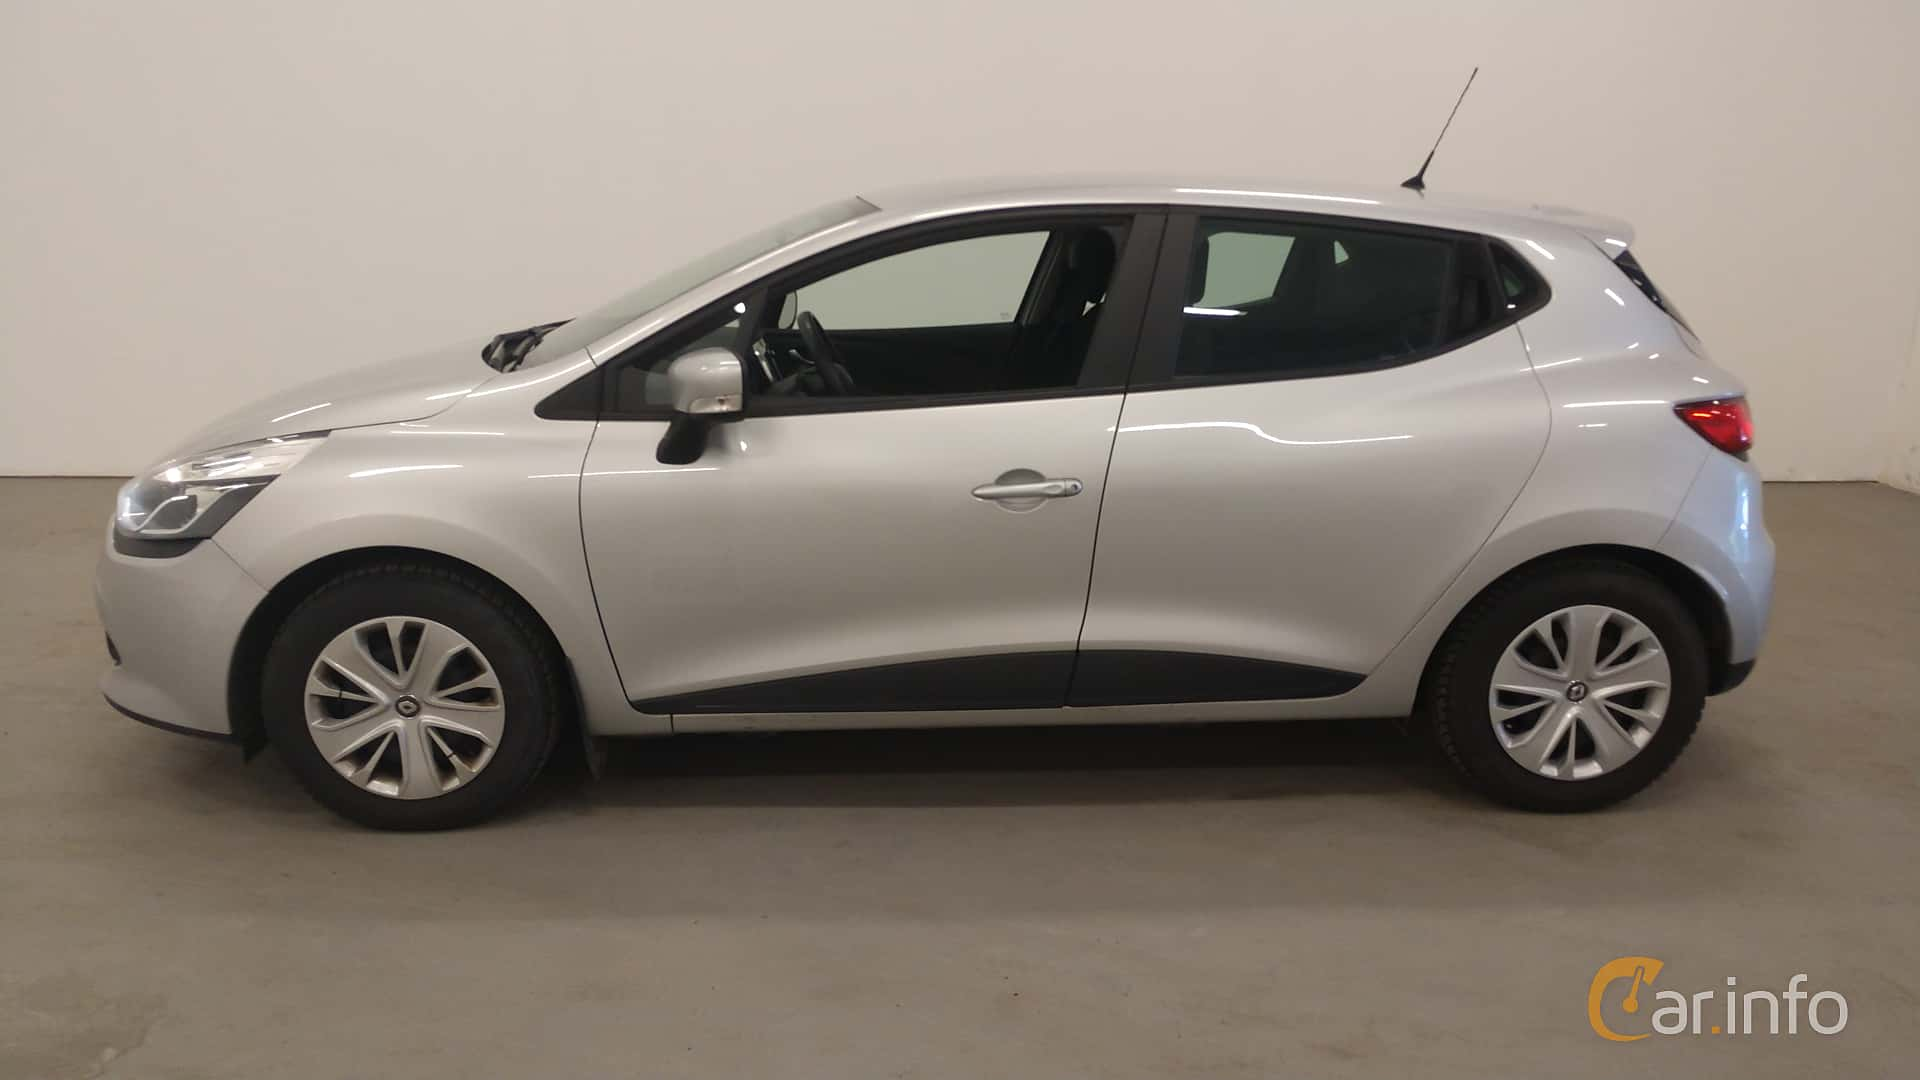 Side  of Renault Clio 1.5 dCi Manual, 90ps, 2016